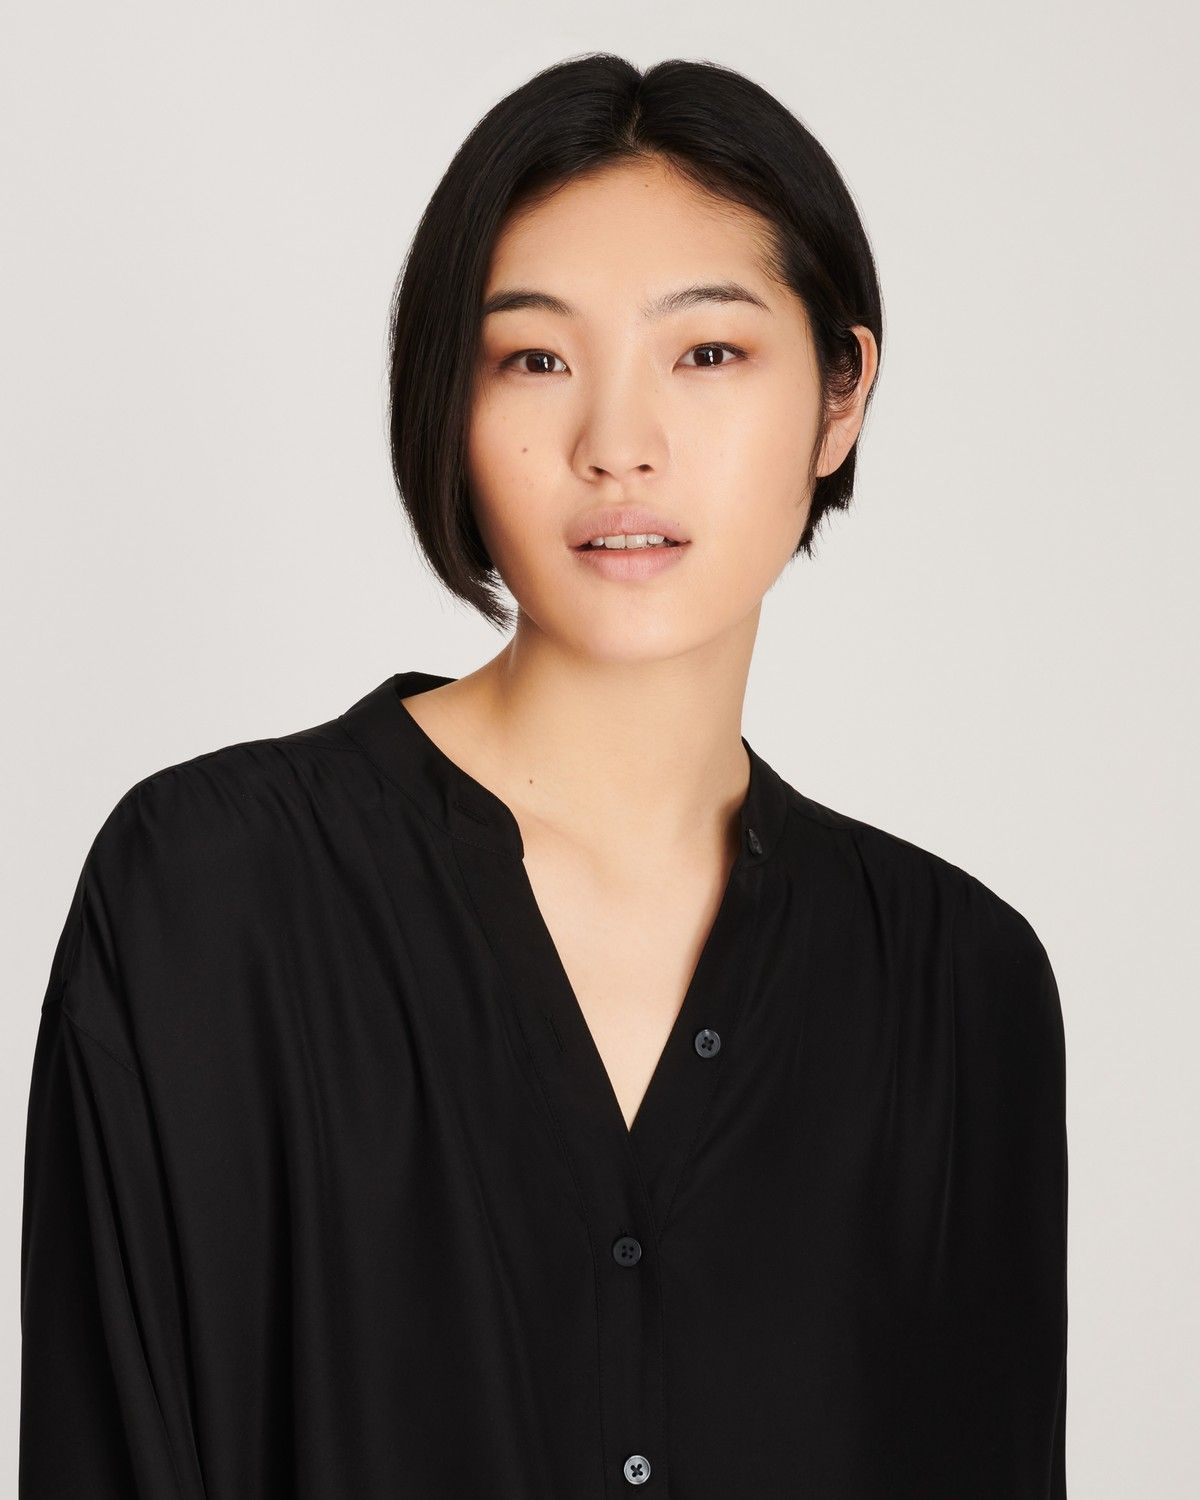 23 Exceptional Asian Short Hairstyles that Looks Enchanting 21313ab463cca88a9ae52d1b6893789e